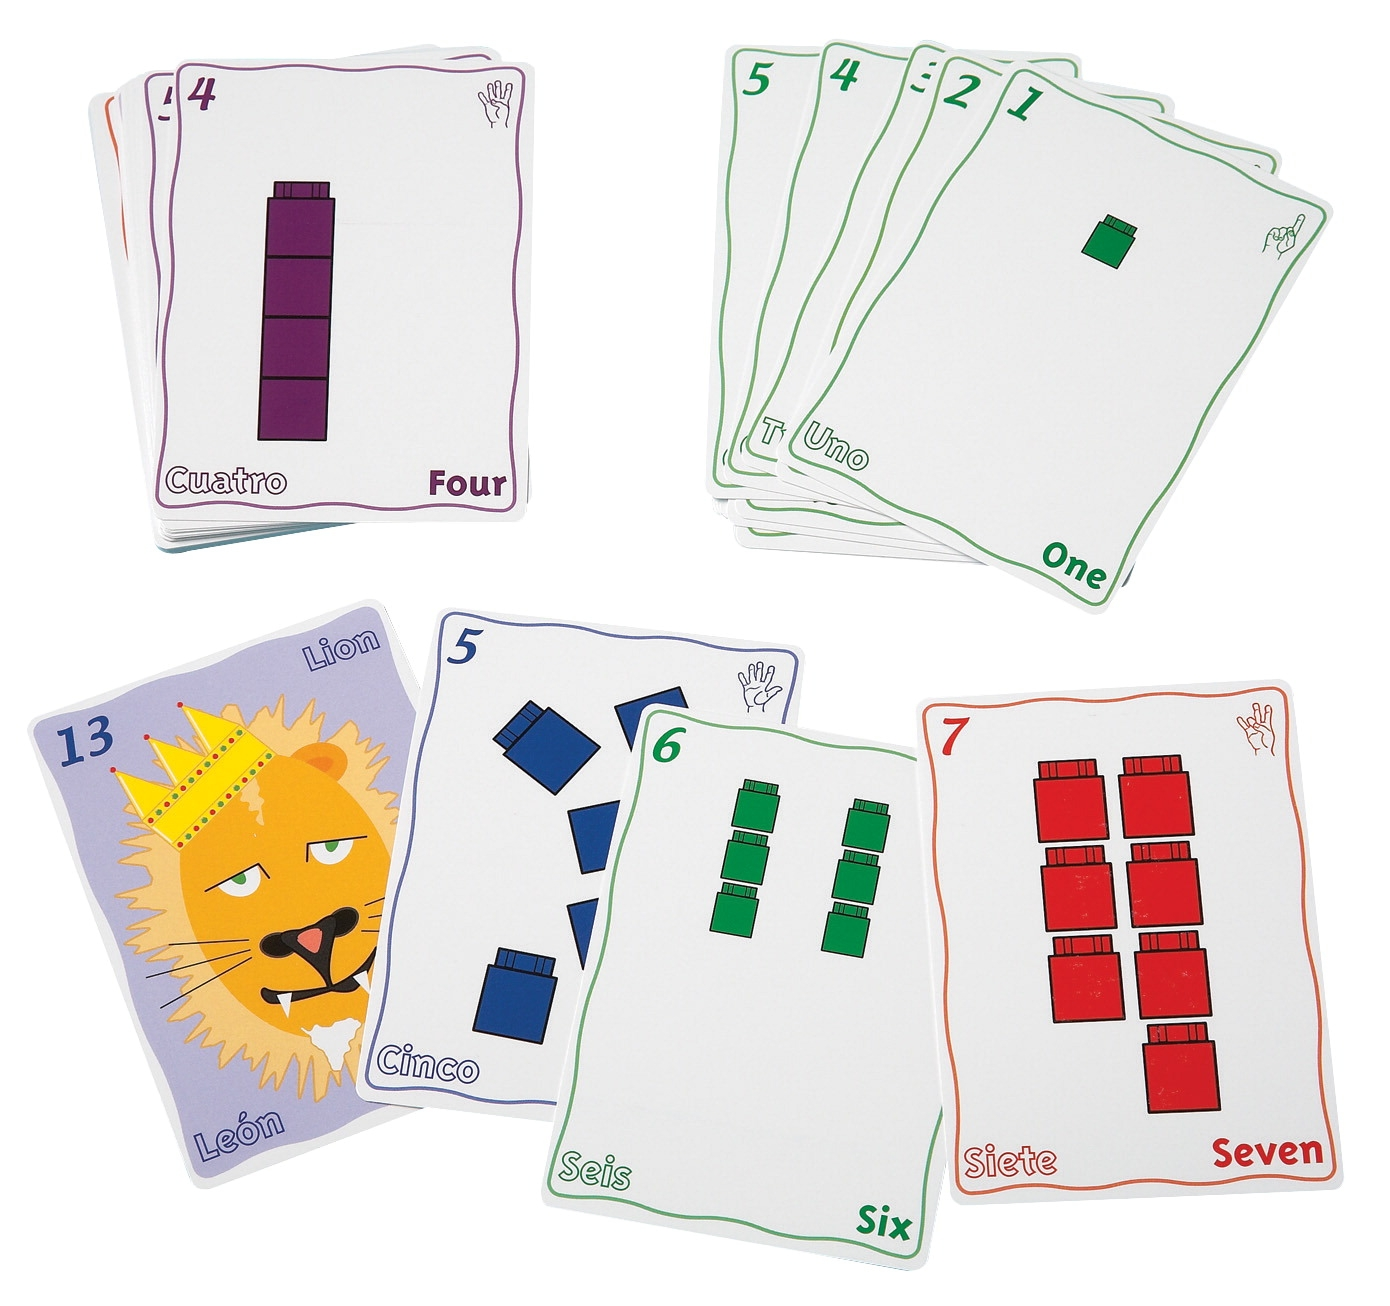 Didax Newmark Learning Unifix Playing Card Set - 1474654 - Toys Manipulatives 1474654